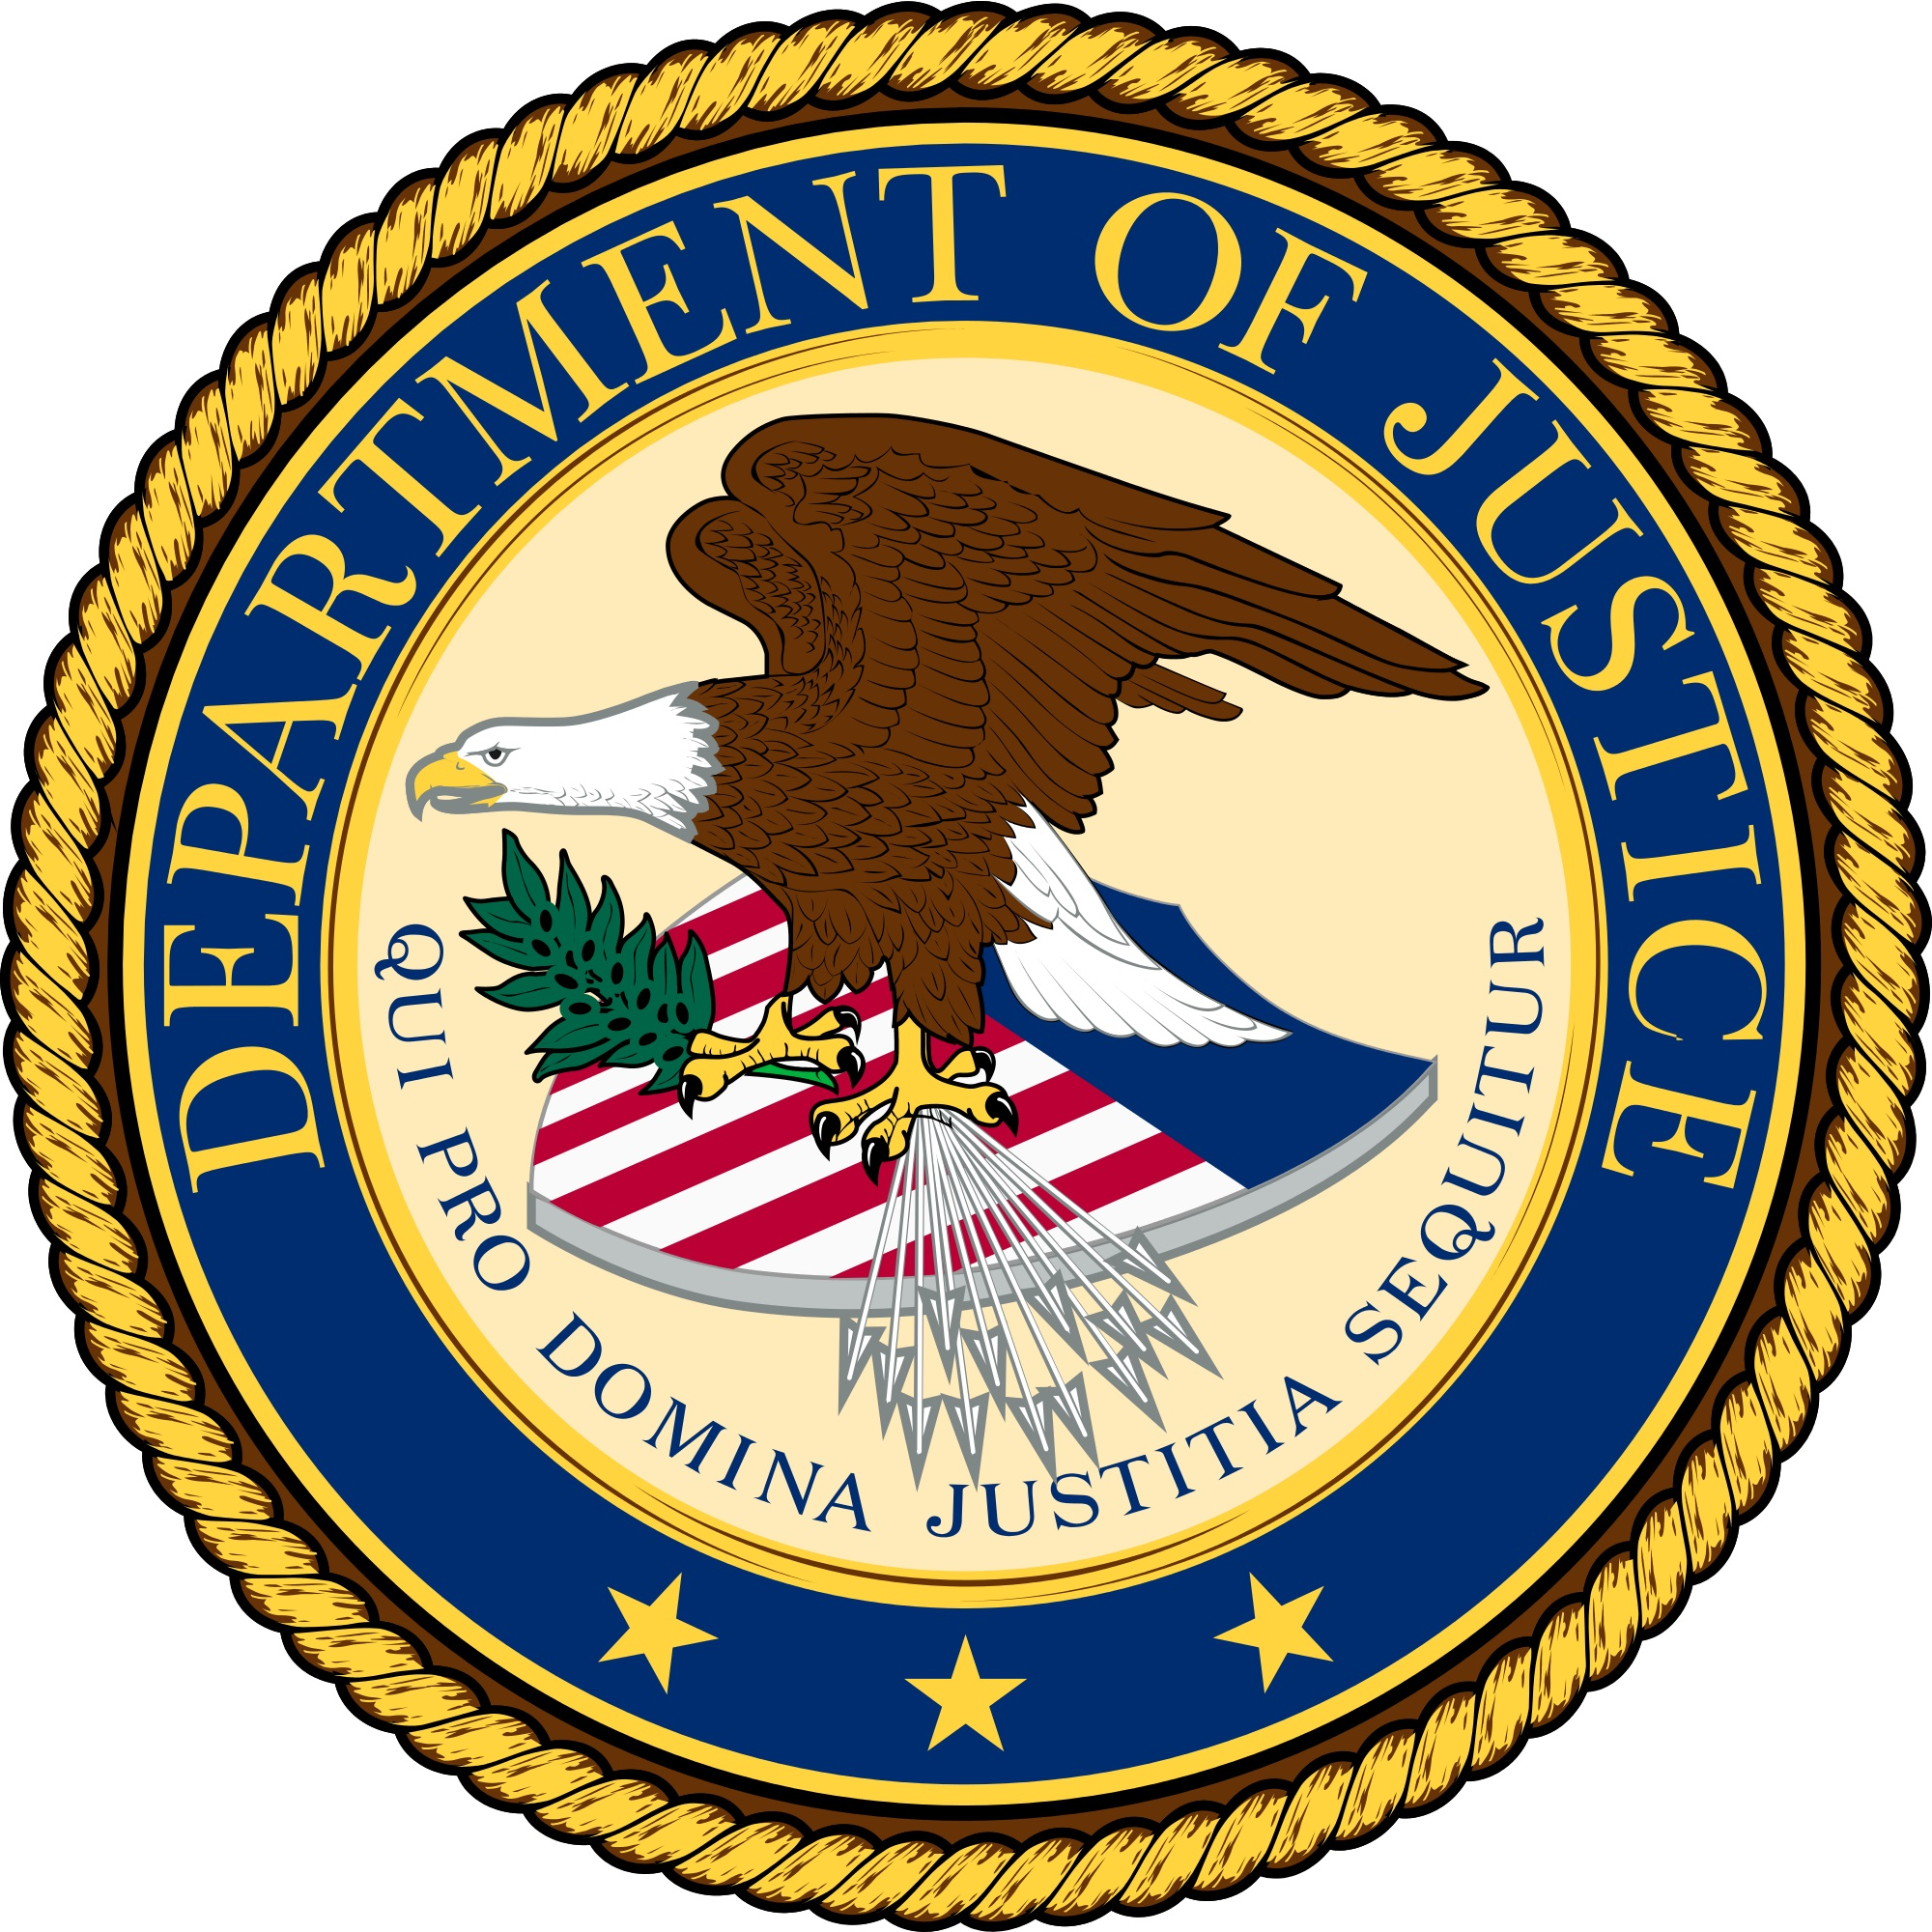 Seal of the U.S. Department of Justice